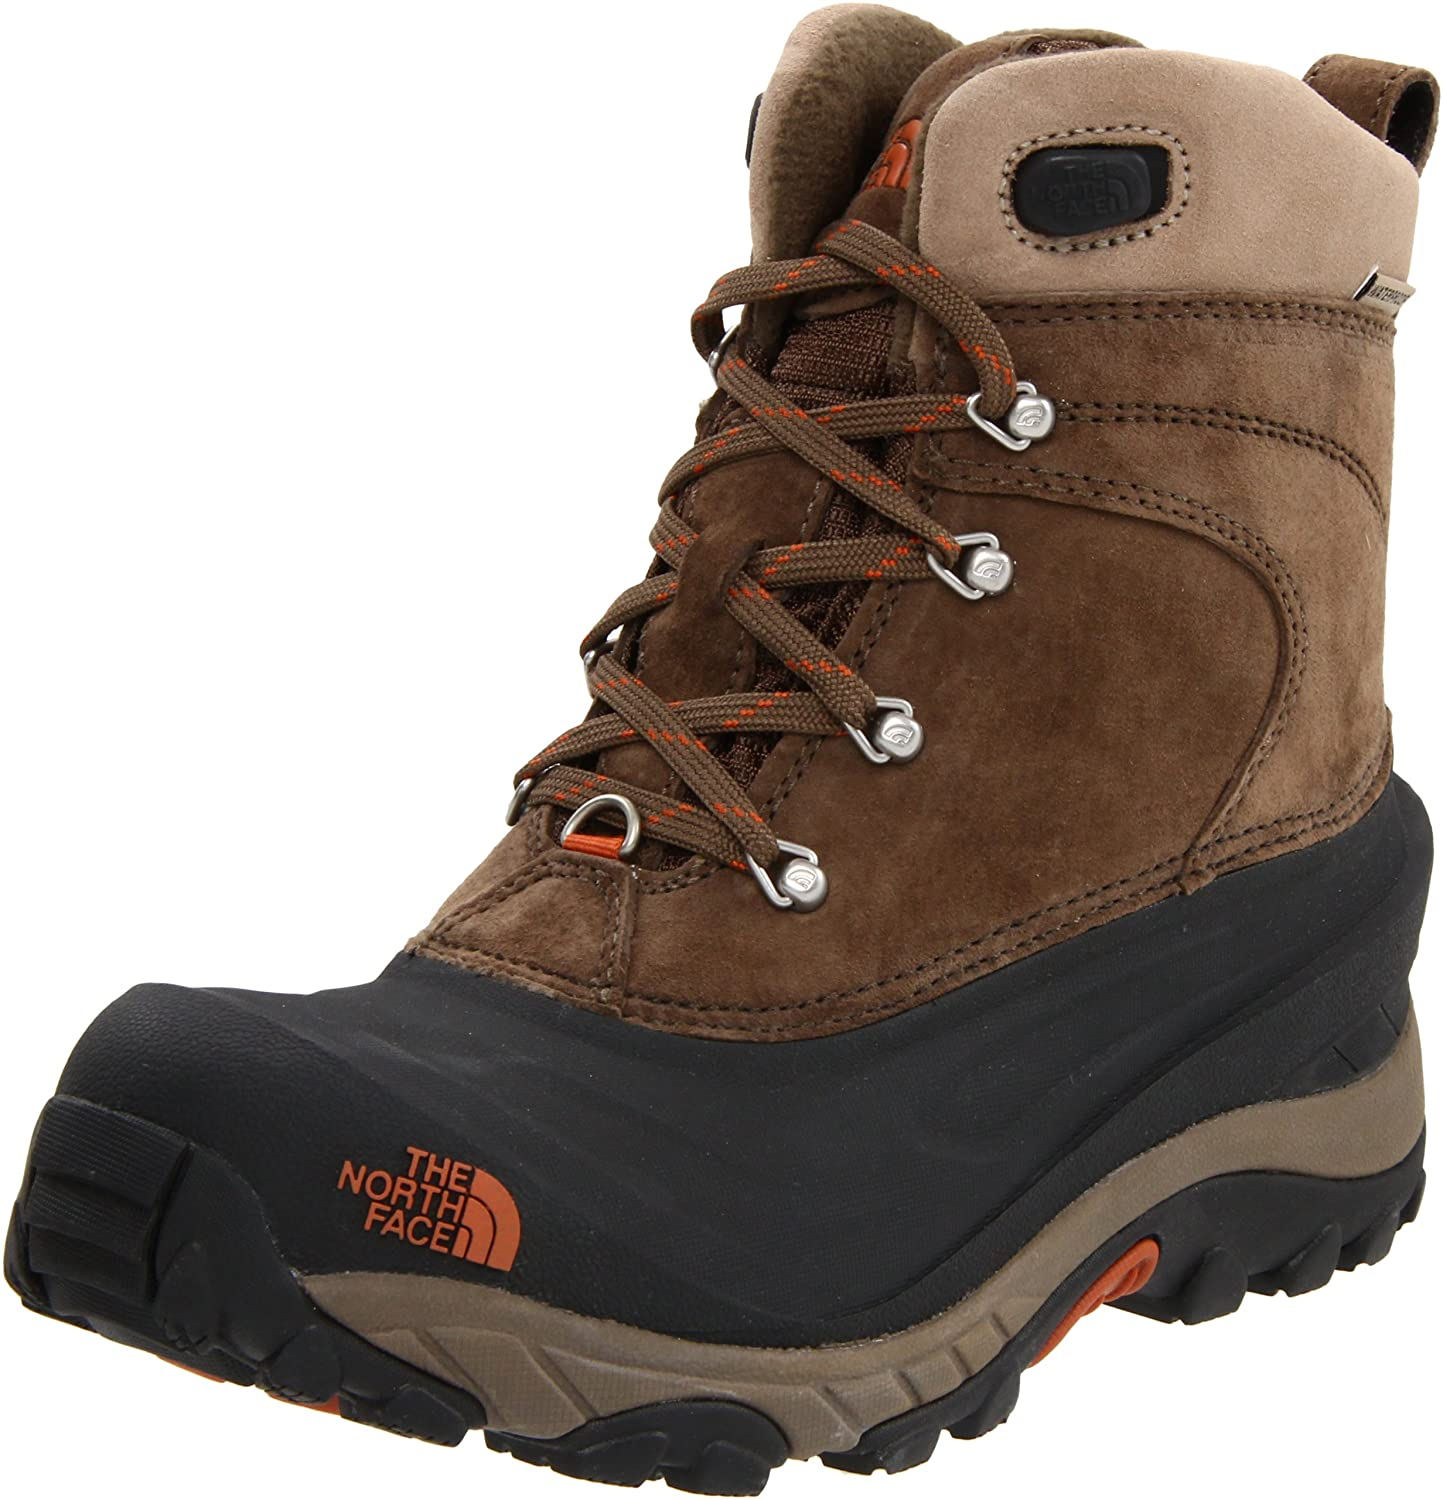 ce50f2c4d7be THE NORTH FACE Men s Chilkat II Insulated Boot Brown  The North Face   Amazon.ca  Shoes   Handbags